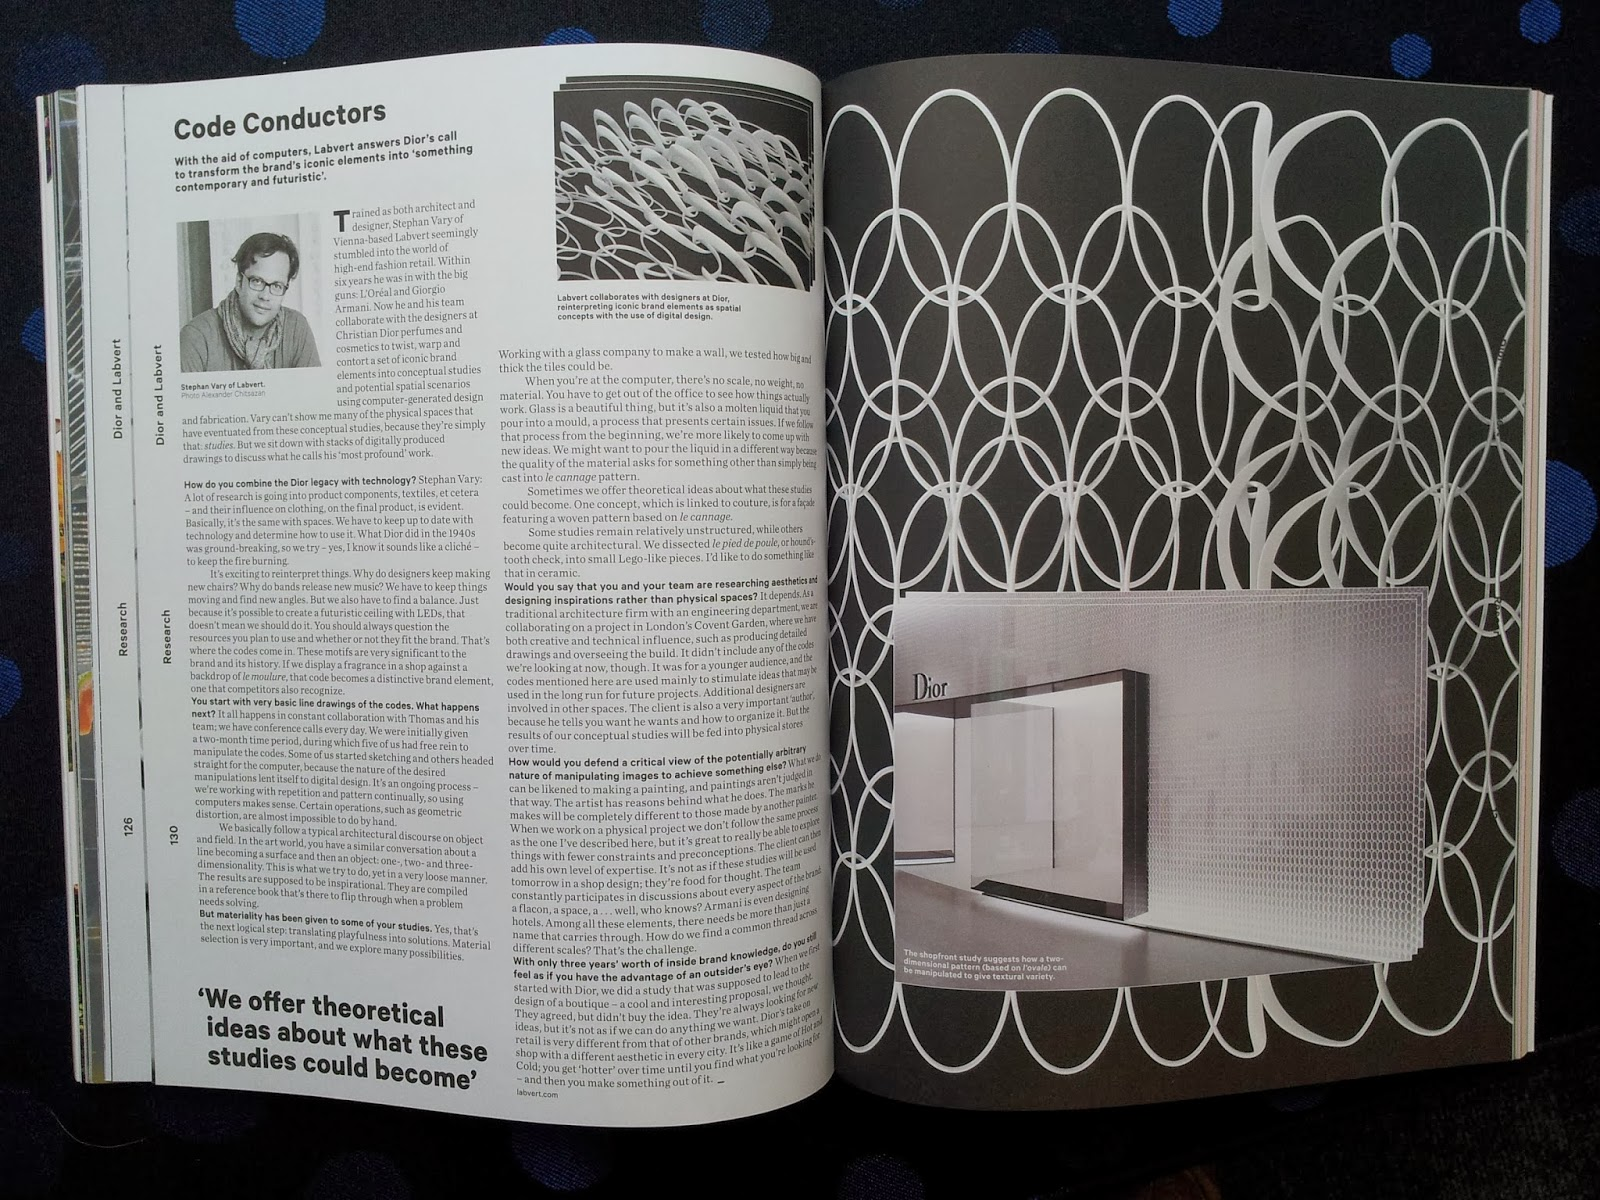 d design work related magazine article lucie richmond group because i could not get a good copy of the article i wanted i decided to go back to the college library and look at the 2d design related articles again